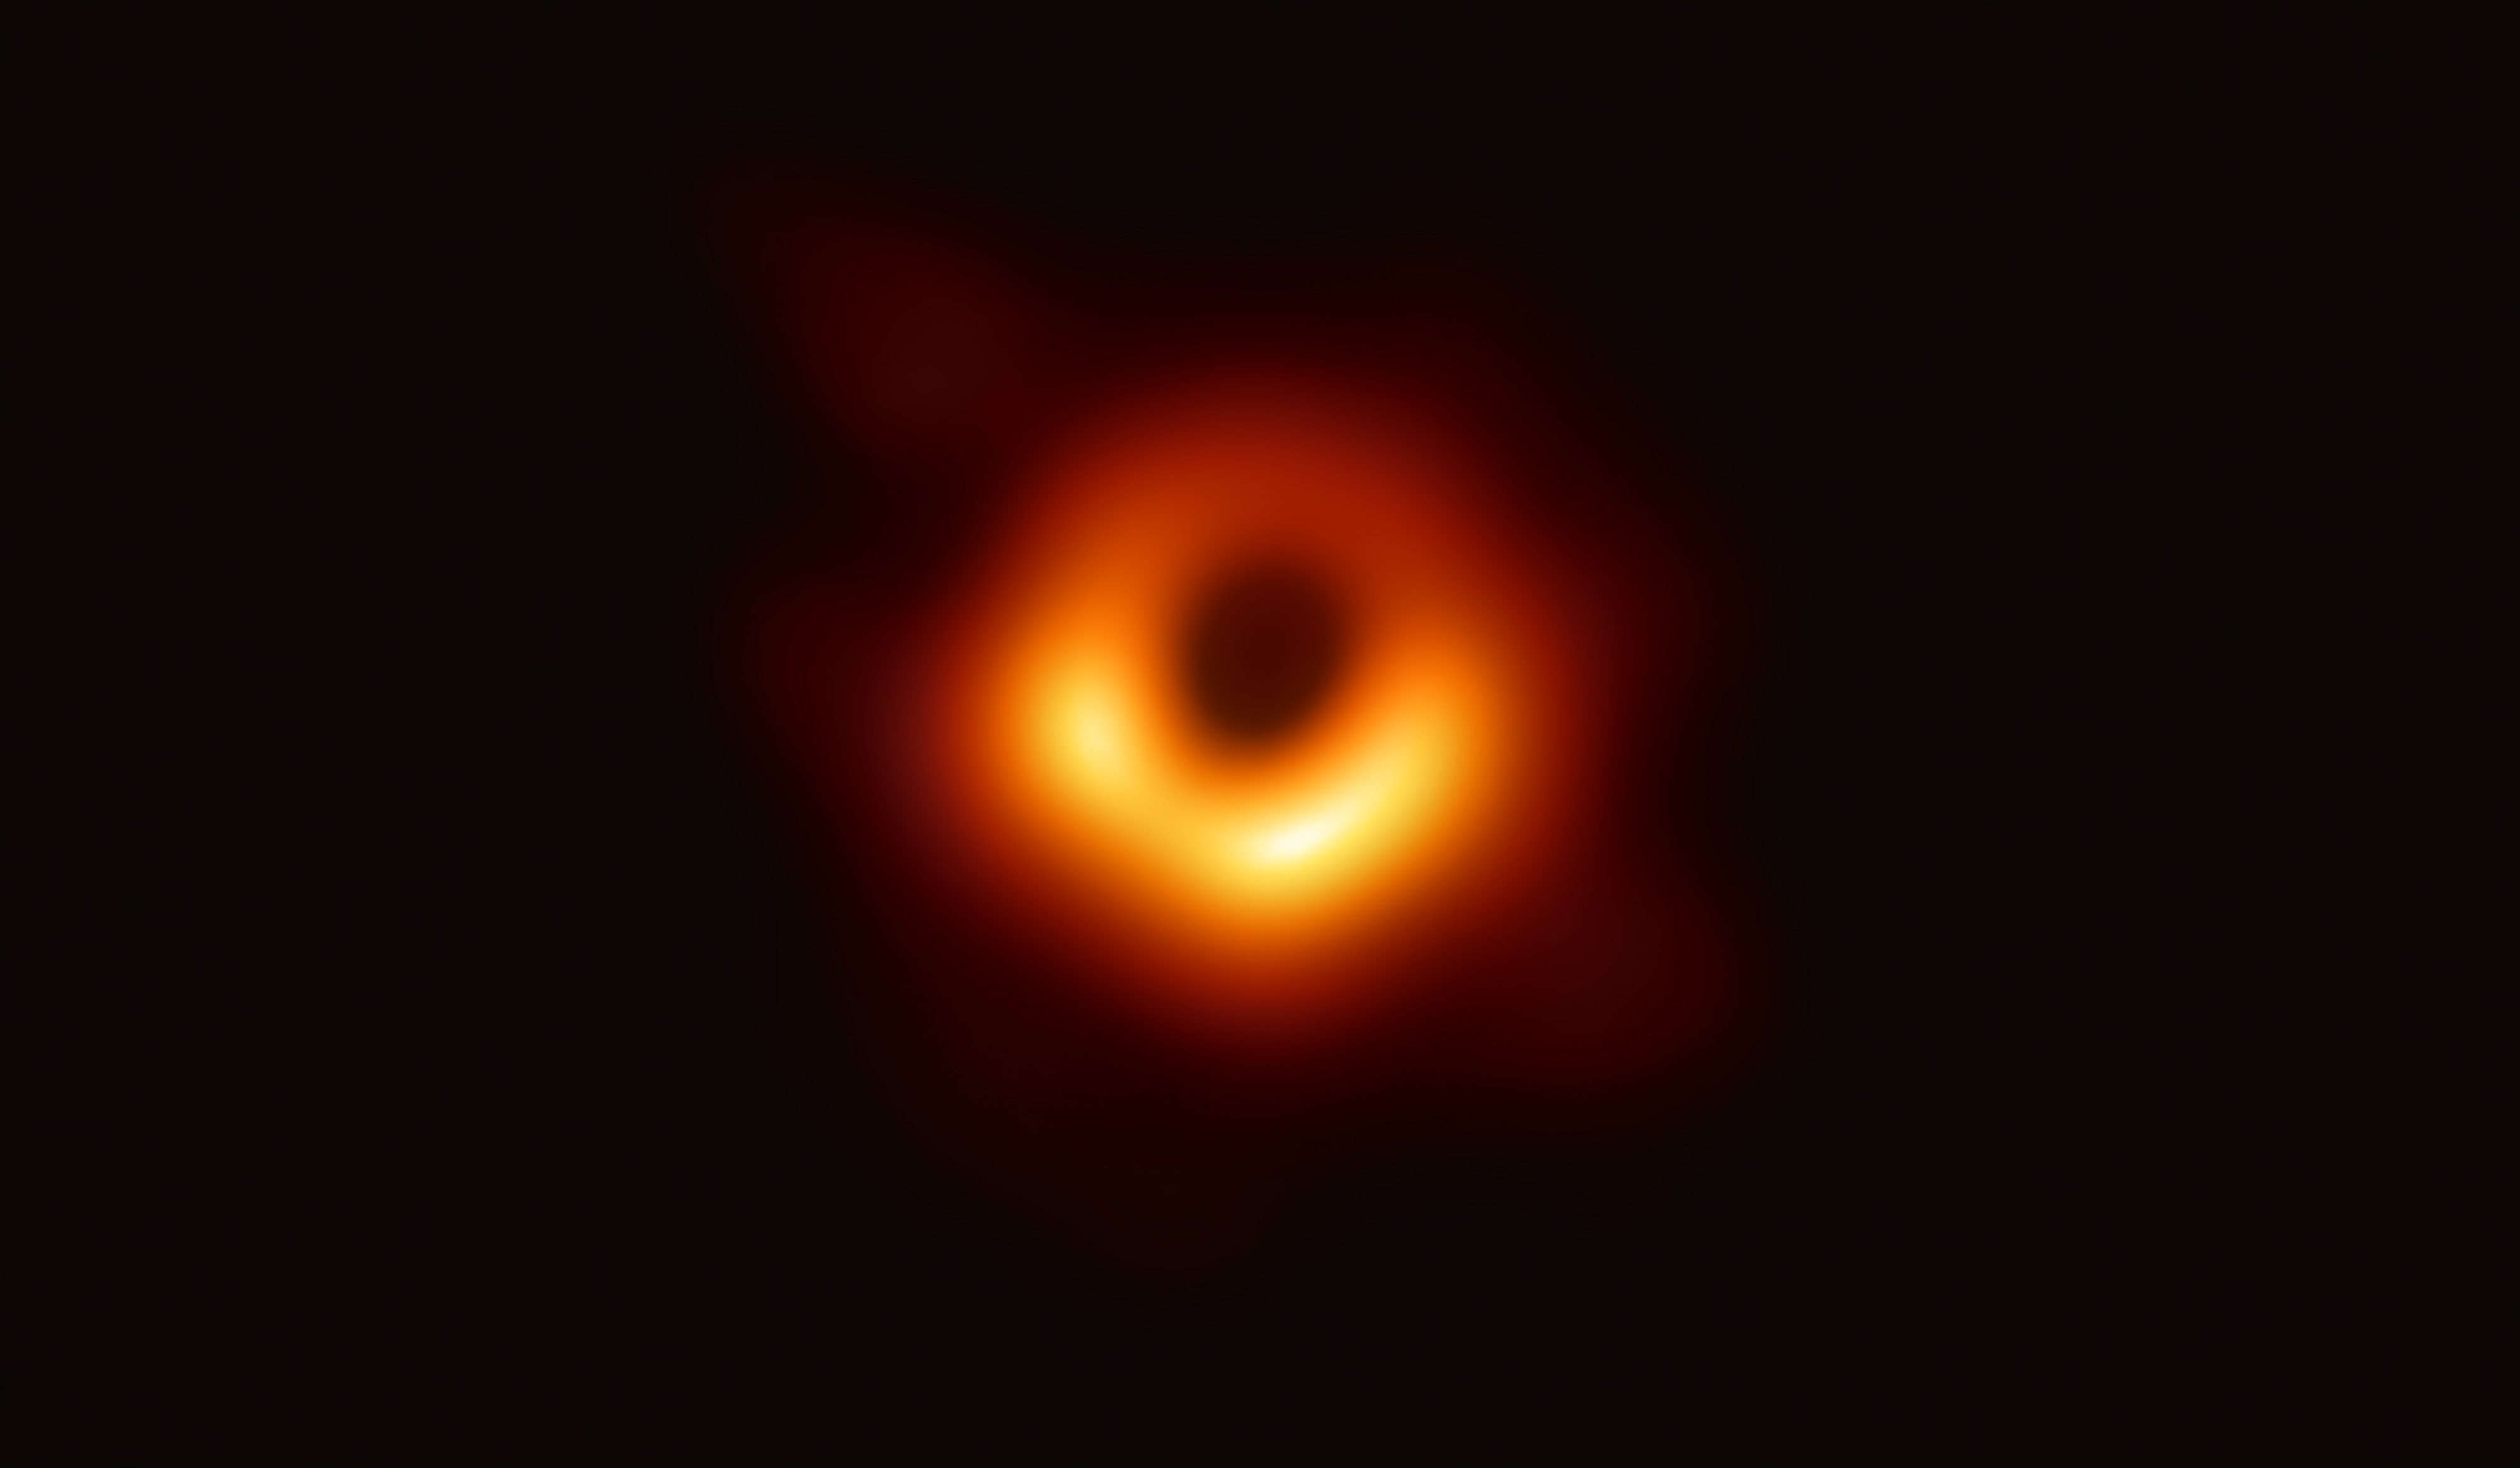 The Astronomers Who Took That Viral Black Hole Photo Now Want to Do a Live Video Feed + Other Stories